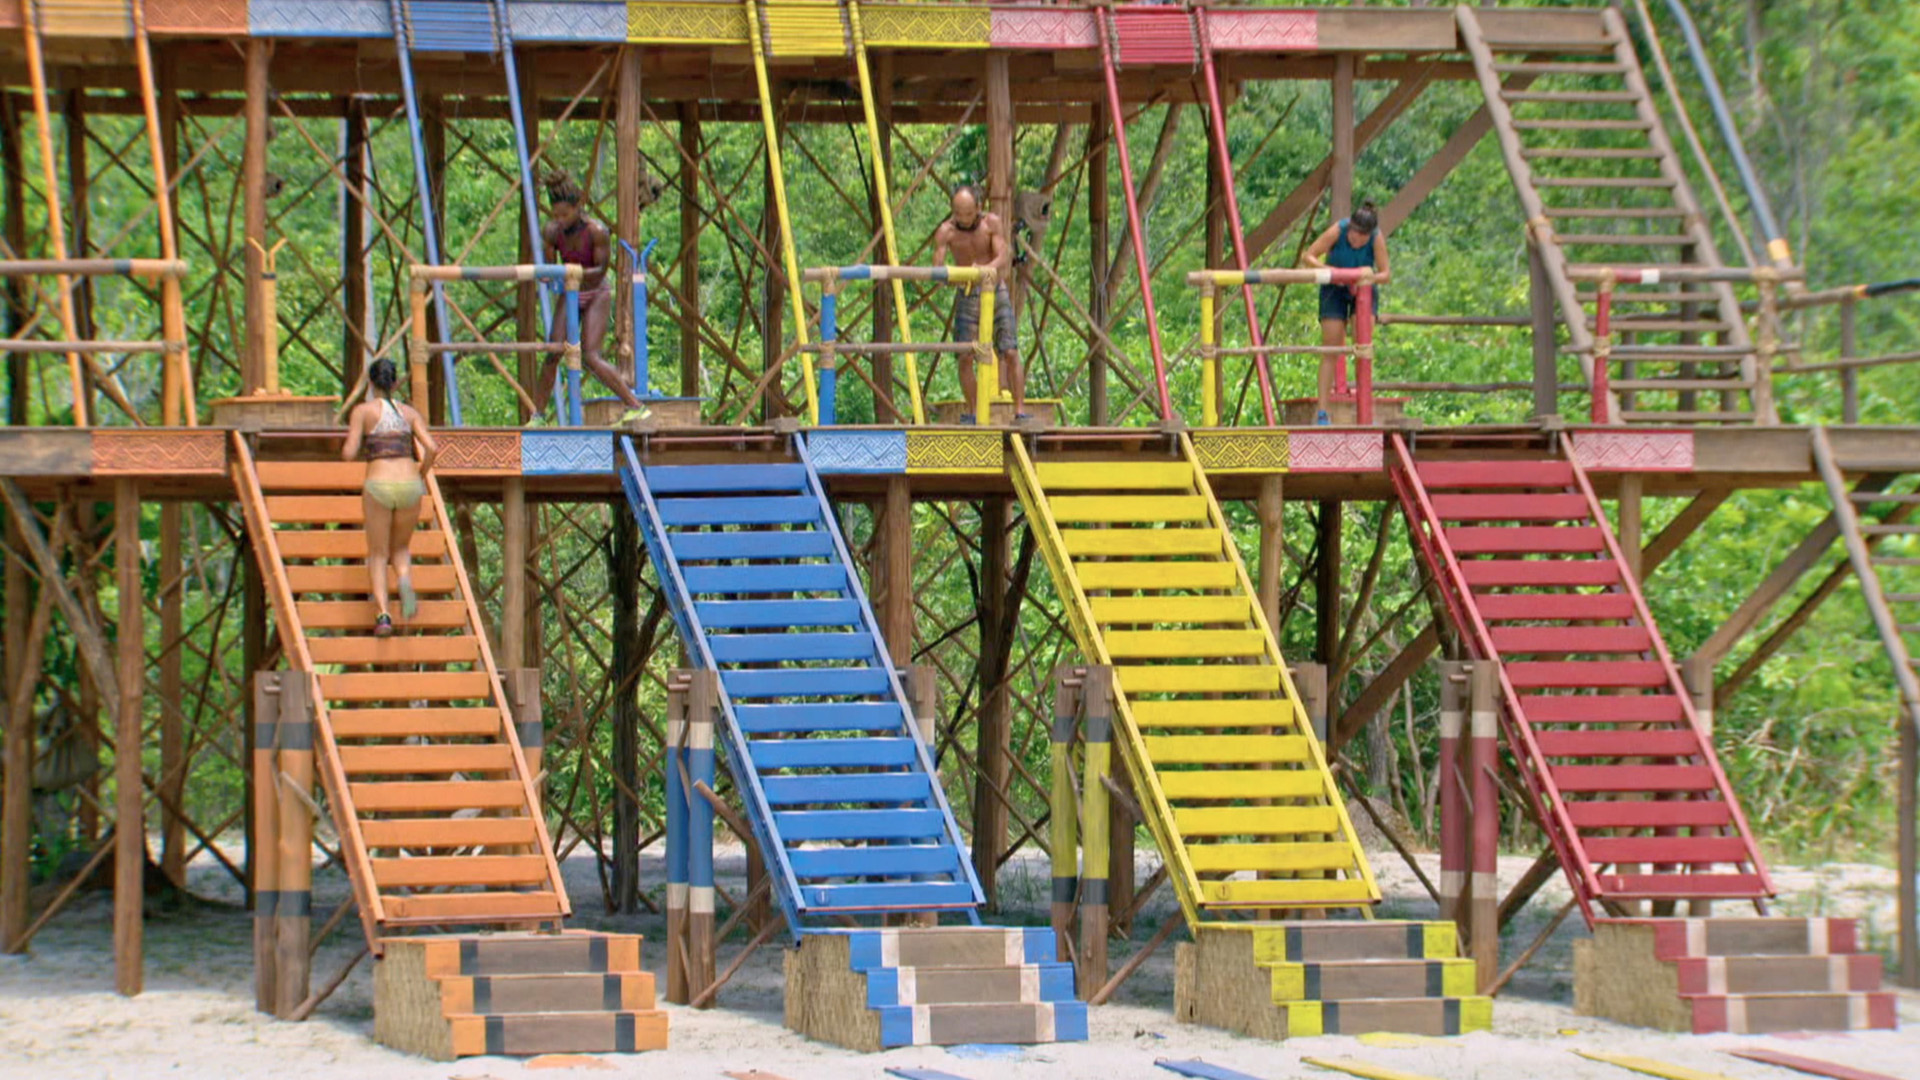 This Individual Immunity Challenge will have the Final 4 racing up a set of steep stairs.